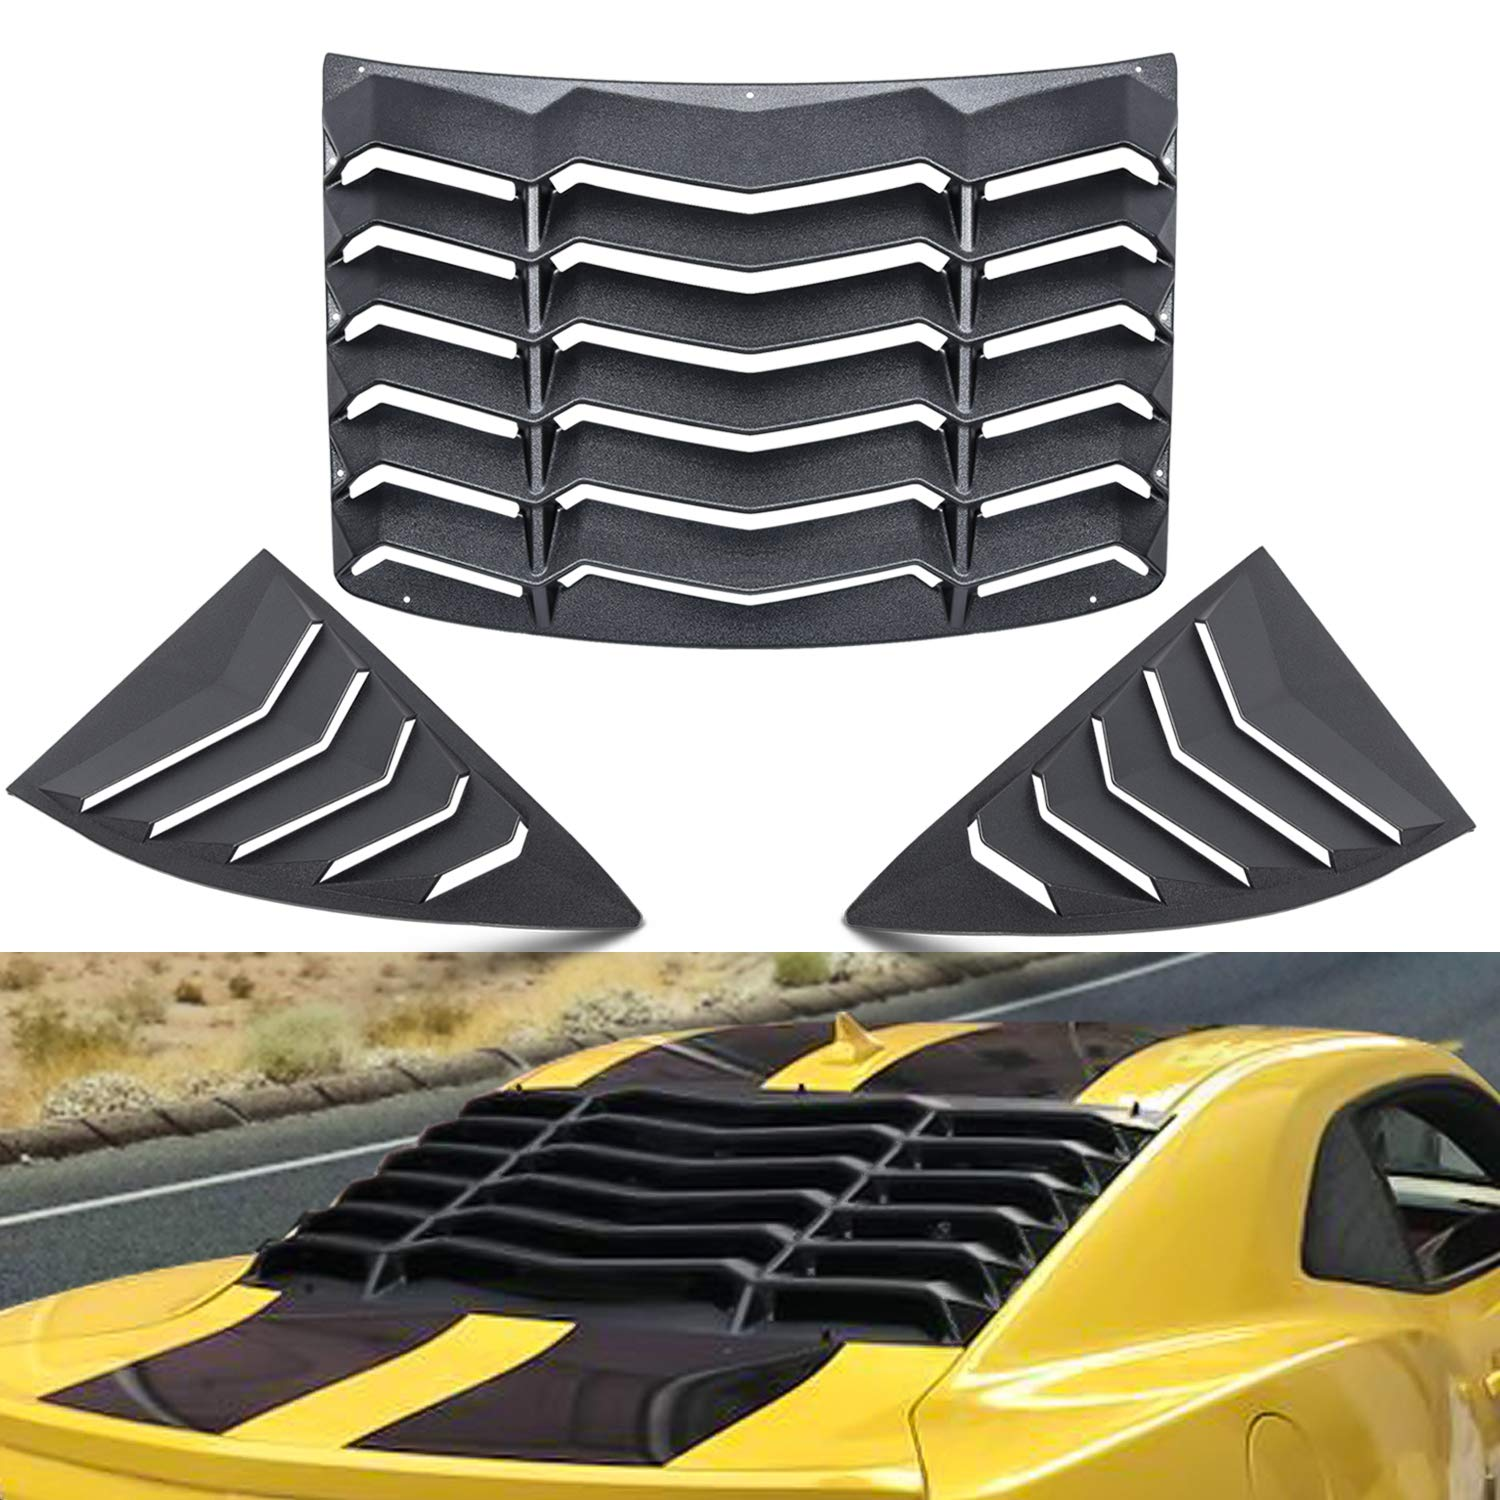 CUMART Rear+Side Window Louvers Sun Shade Windshield Cover Matte Black Compatible with Chevrolet Chevy Camaro 2010 2011 2012 2013 2014 2015 Complete Set